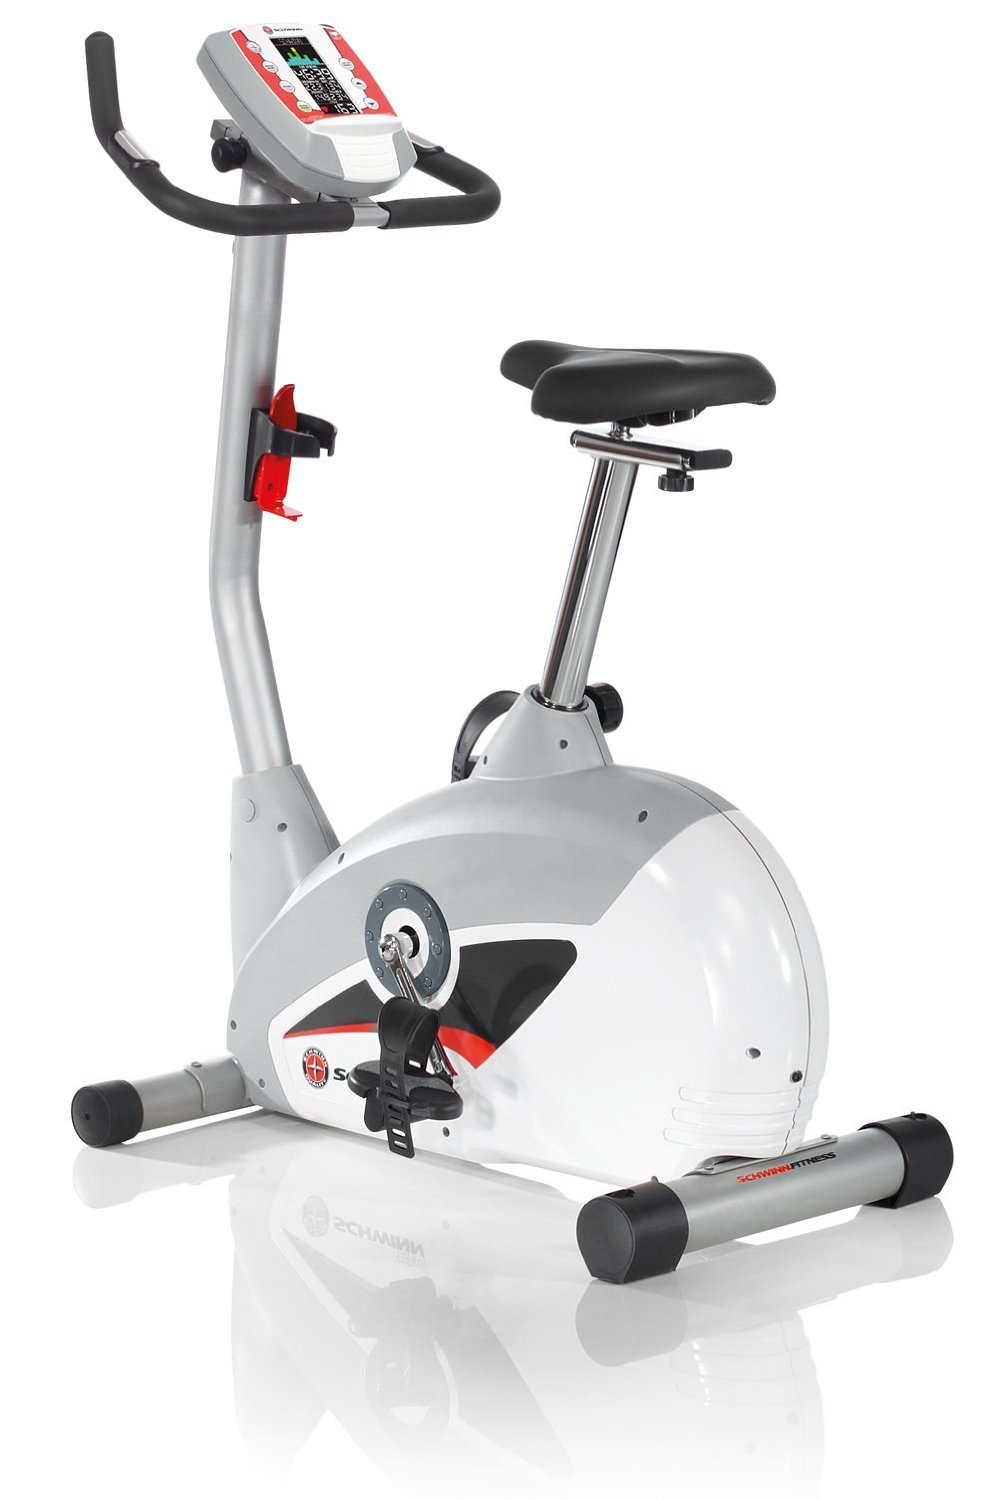 Compare Recumbent Exercise Bikes Of 2017